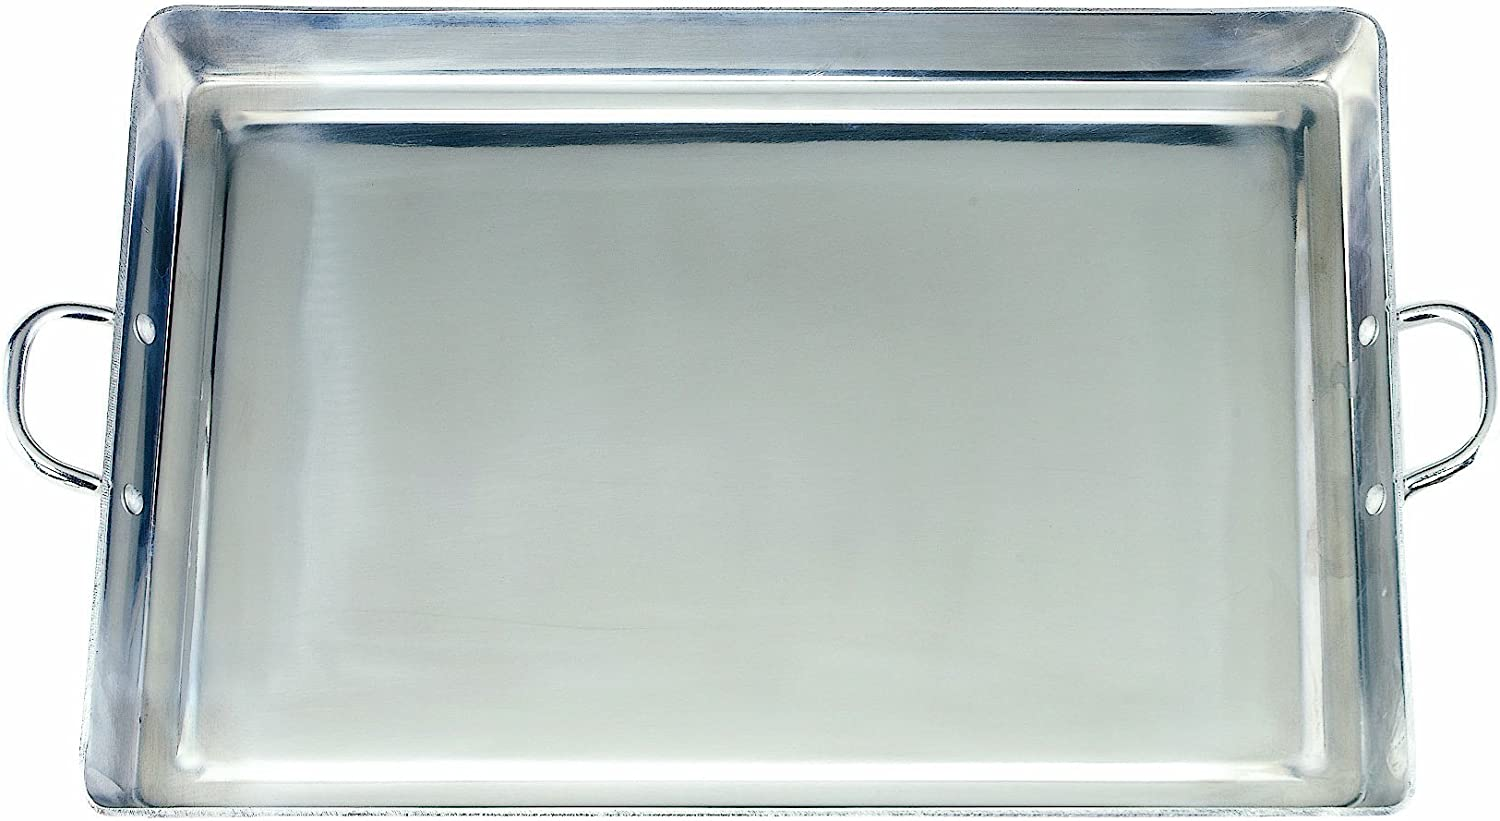 Crestware Aluminum Opening large release sale Griddle 19-1 Polished 2-Inch by 15.375-Inch Charlotte Mall